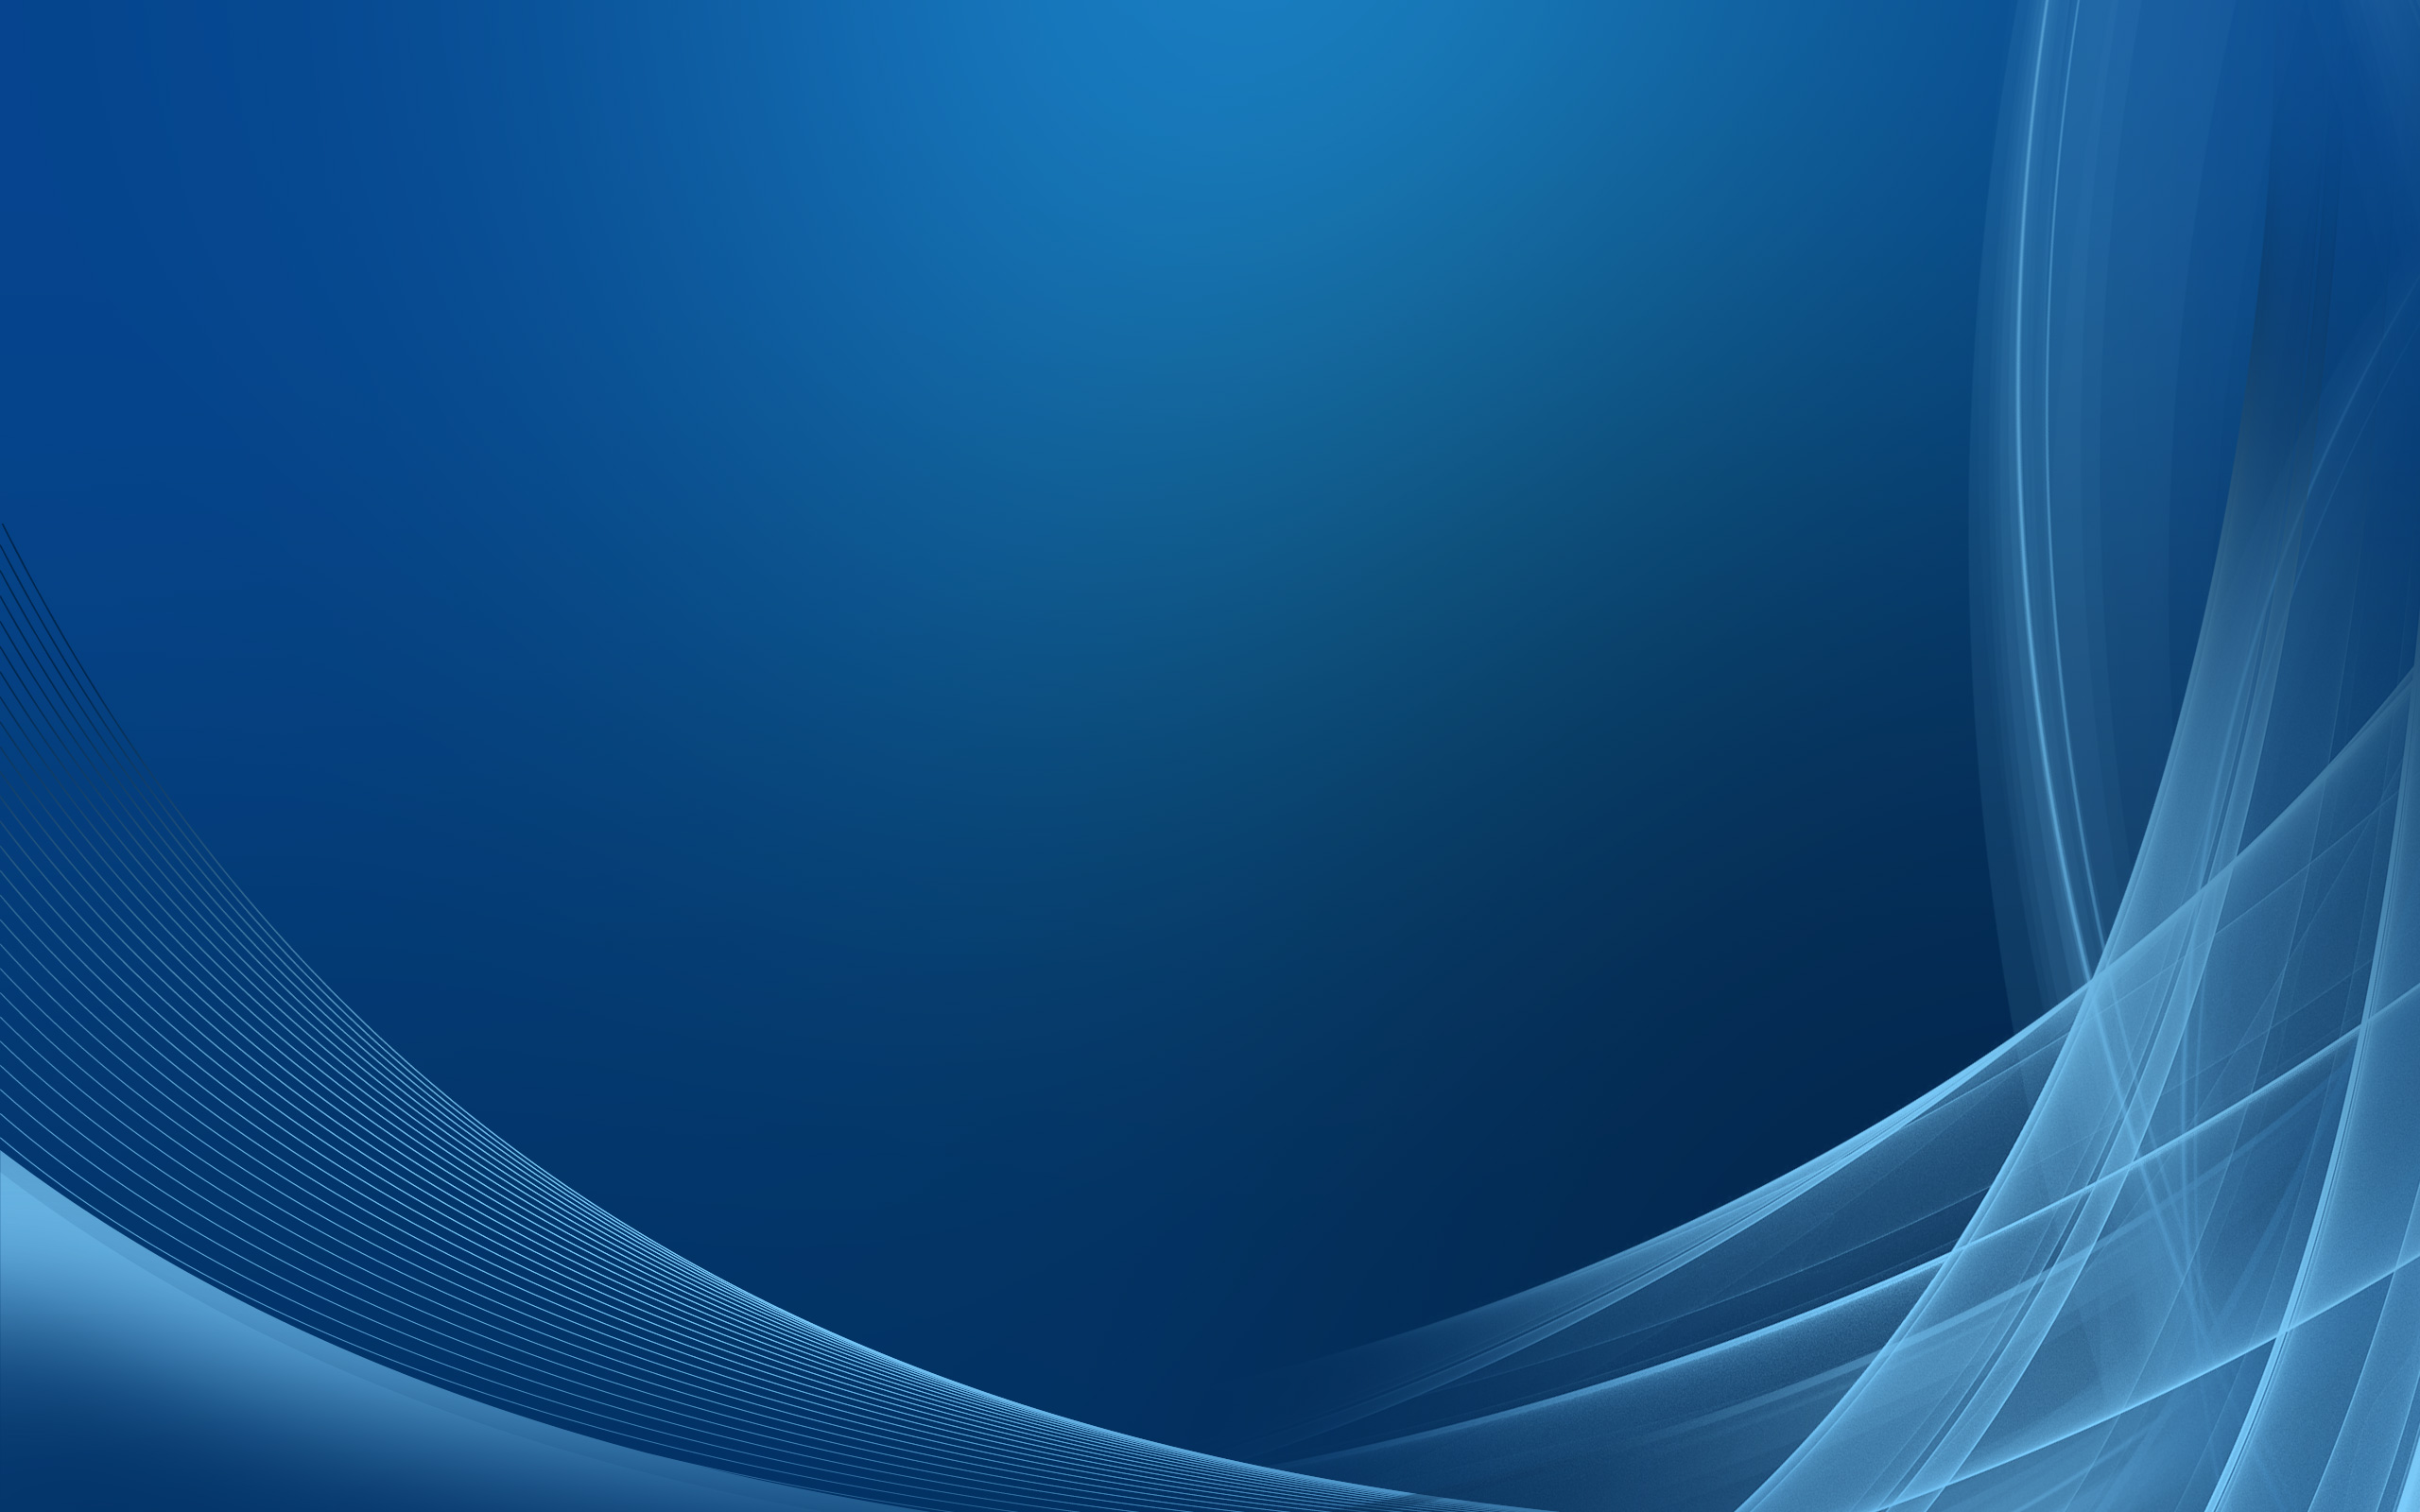 Blue Abstract Design Wallpaper